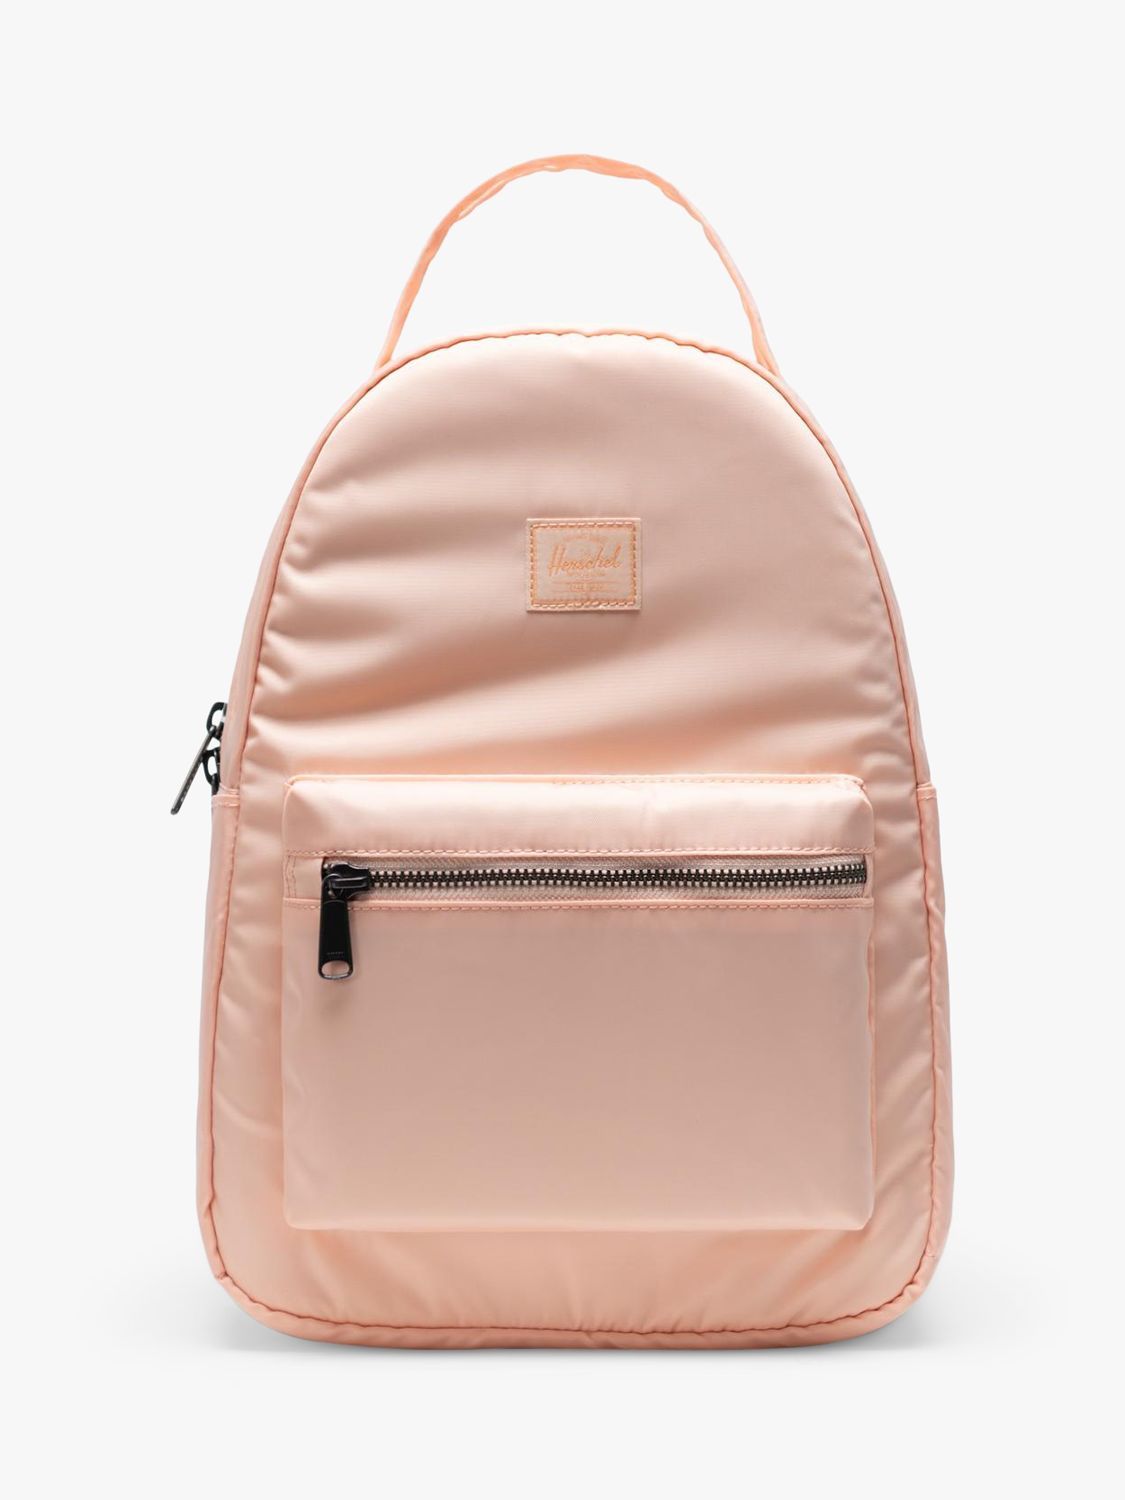 Herschel Supply Co. Herschel Supply Co. Nova Small Backpack, Apricot